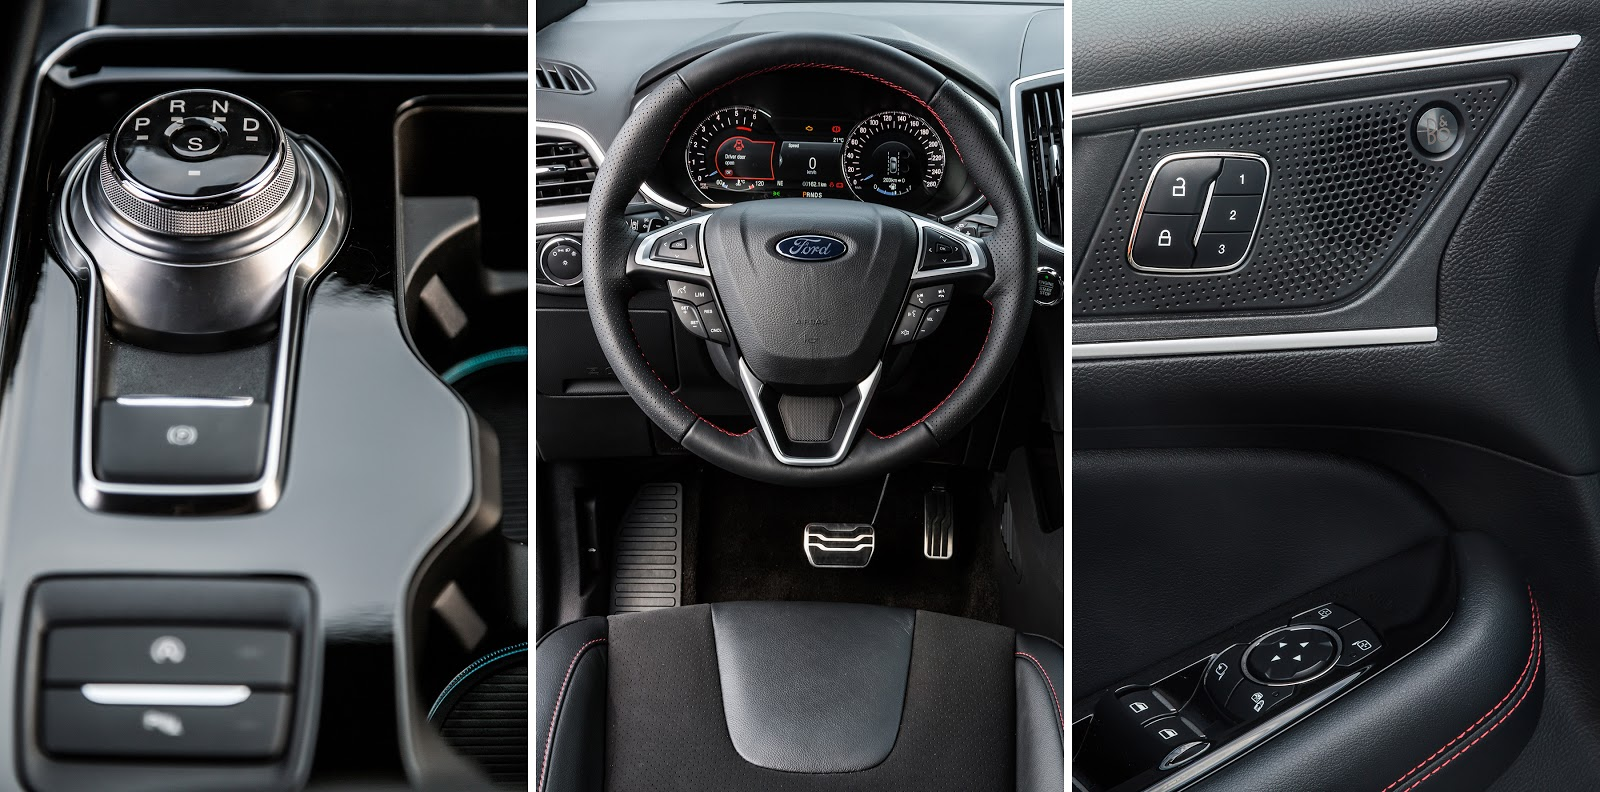 Heated Steering Wheel With Harmonious High Quality Materials And Cutting Edge Design The Spacious New Edge Interior Exudes A Premium Feel